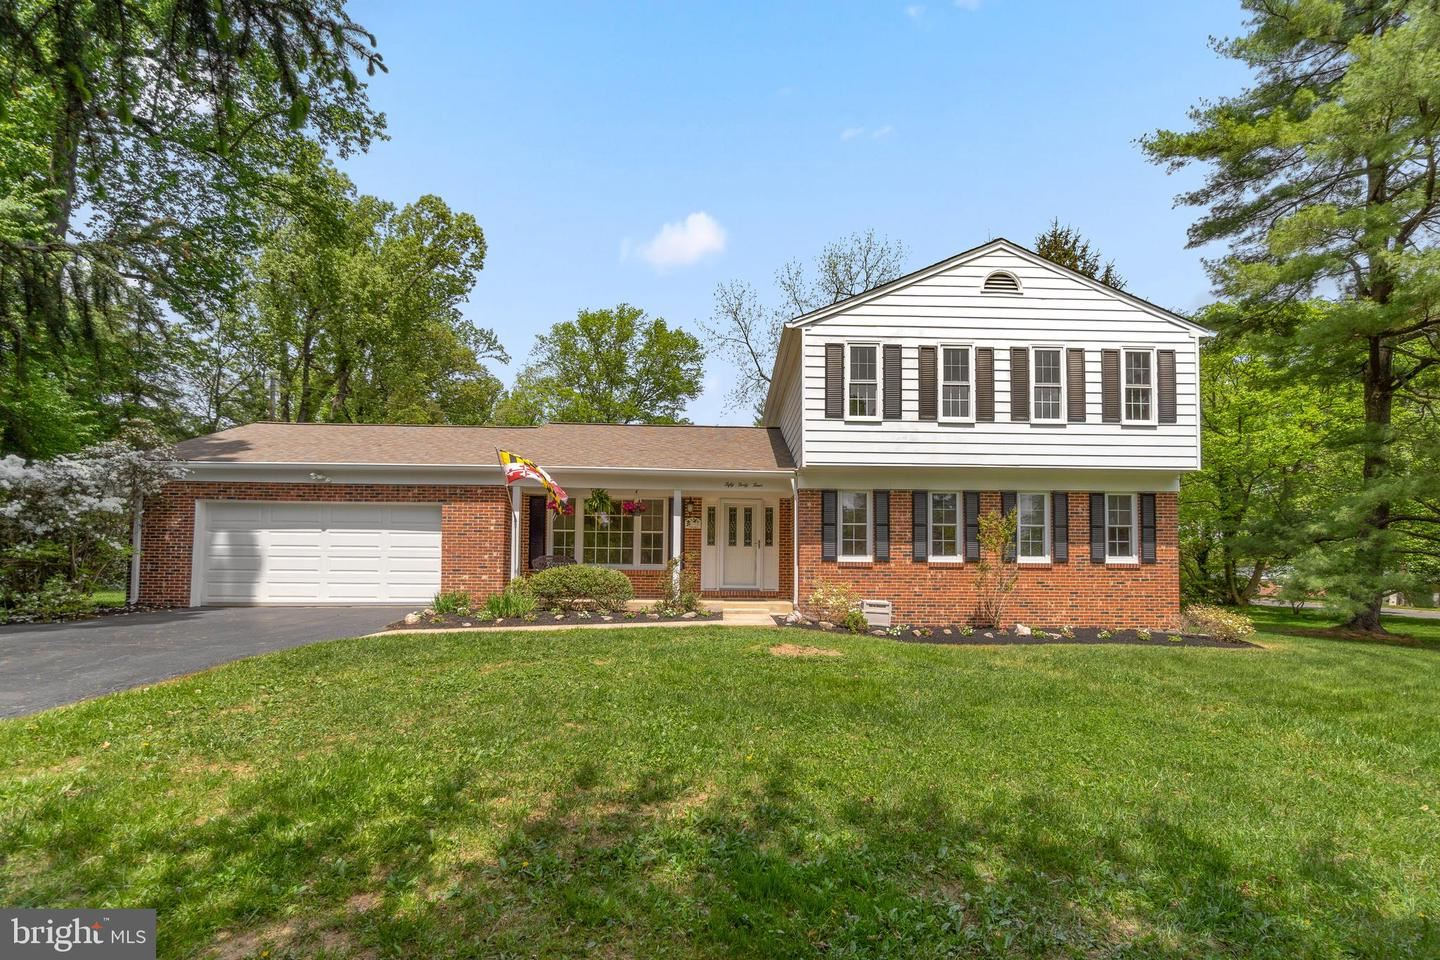 5044 CASTLE MOOR DR, Columbia, MD 21044 - MLS#: MDHW292584